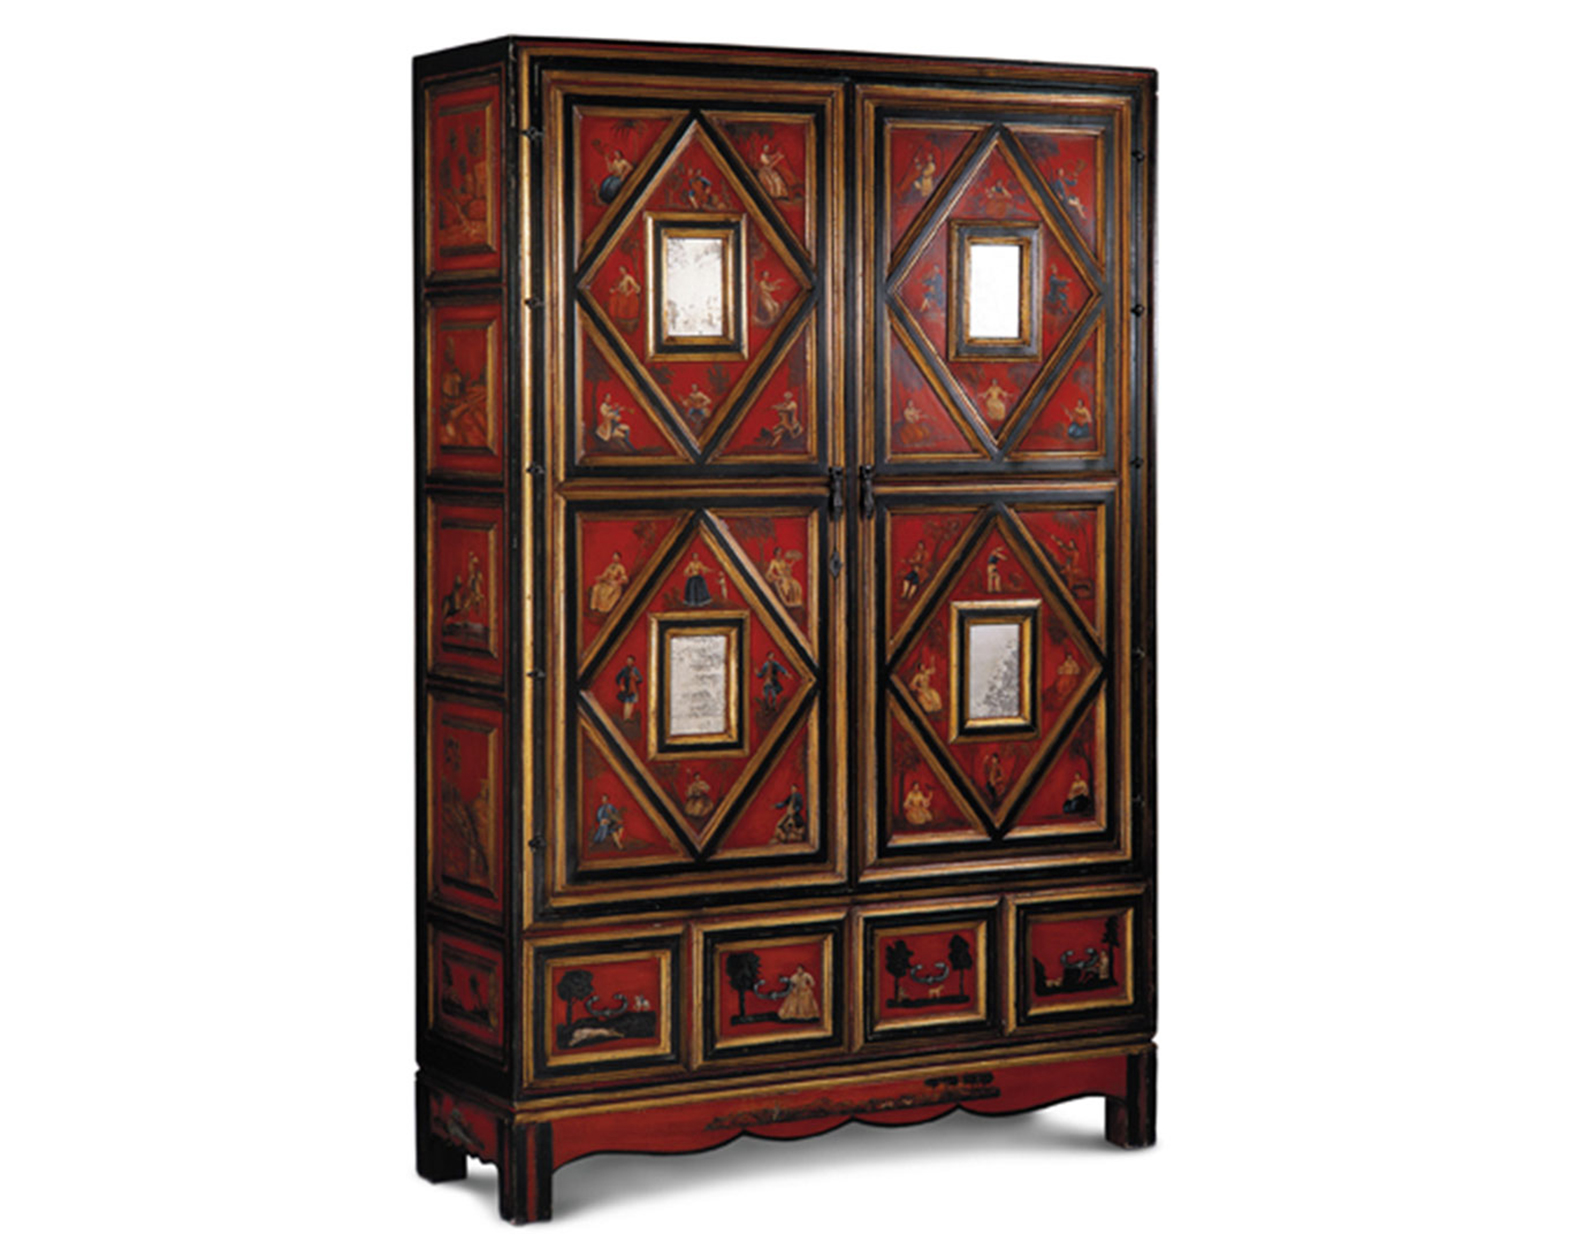 PAINTED ARMOIRE WITH MIRRORS II